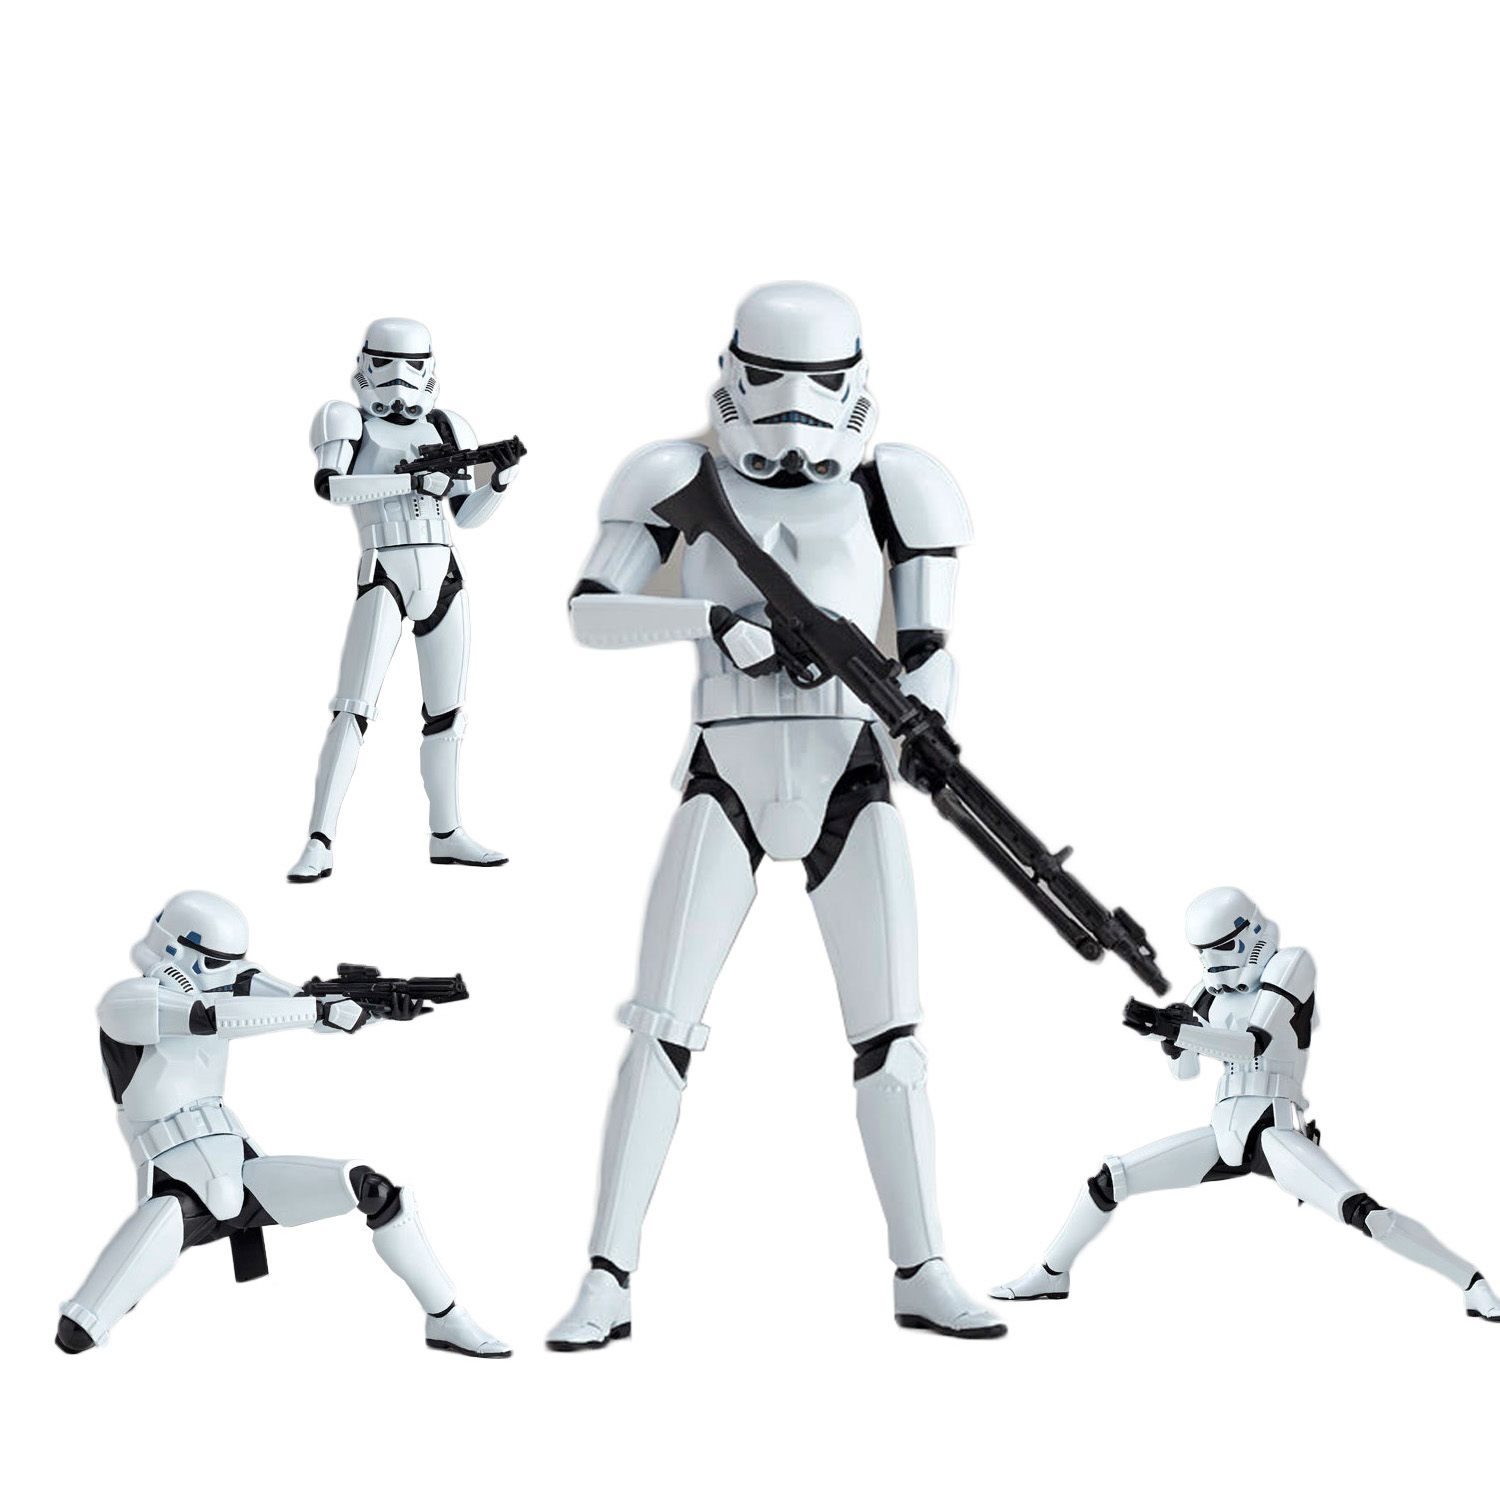 Star Wars:The Force Awakens Storm Trooper 15cm Action Figure Collection Model For Kid Gifts 1071 play arts star wars the force awakens boba fett figure action figures gift toy collectibles model doll 204